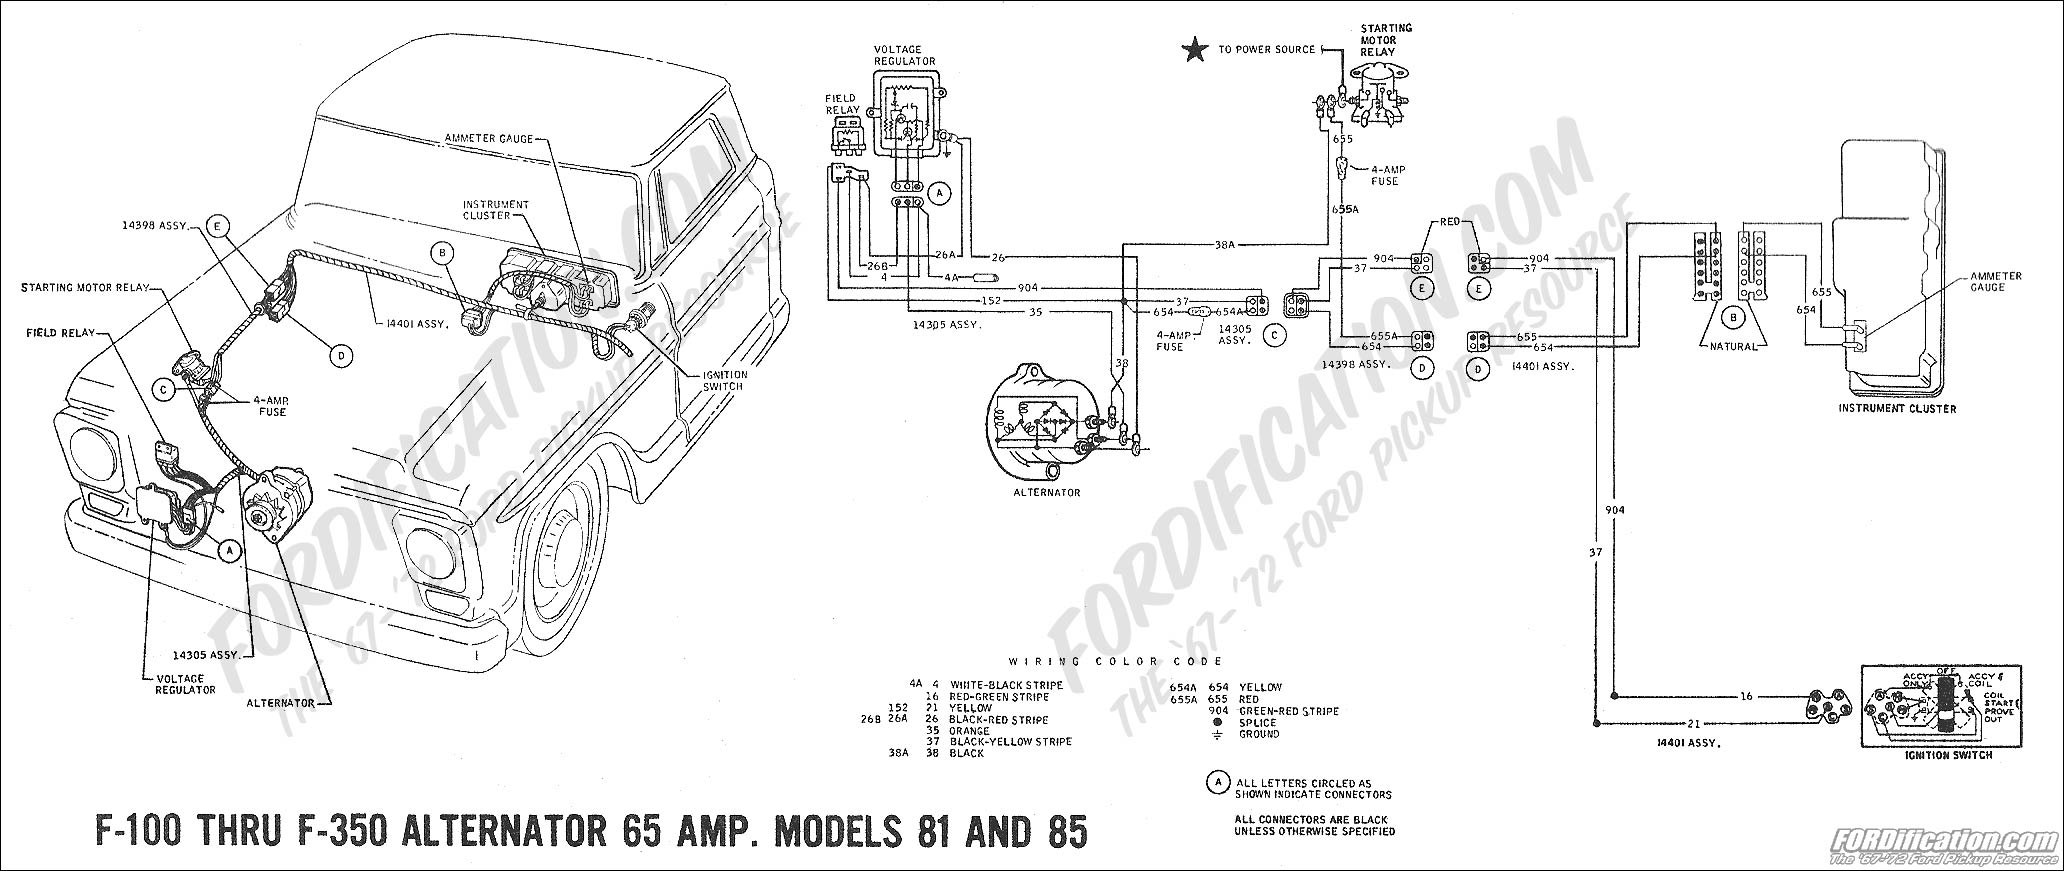 77 Ford Alternator Wiring | Wiring Diagram Ford Alternator Wiring Diagram on